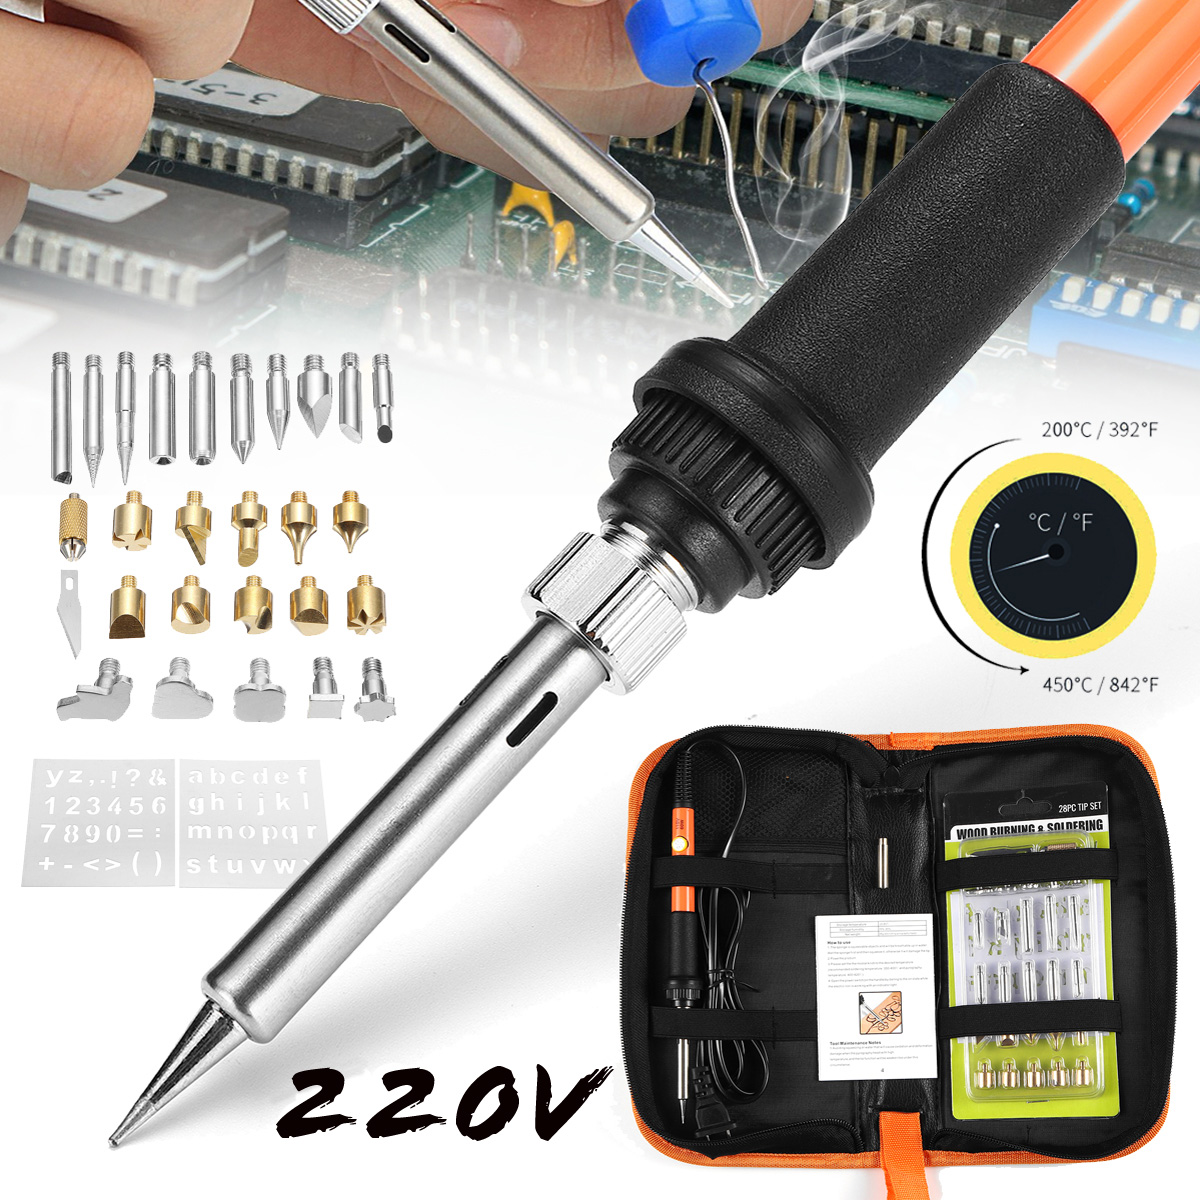 28Pcs 220V 60W Adjustable Temperature Solder Iron Tool Kit Wood Burning Pen Assorted Tips Set EU Plug with Bag